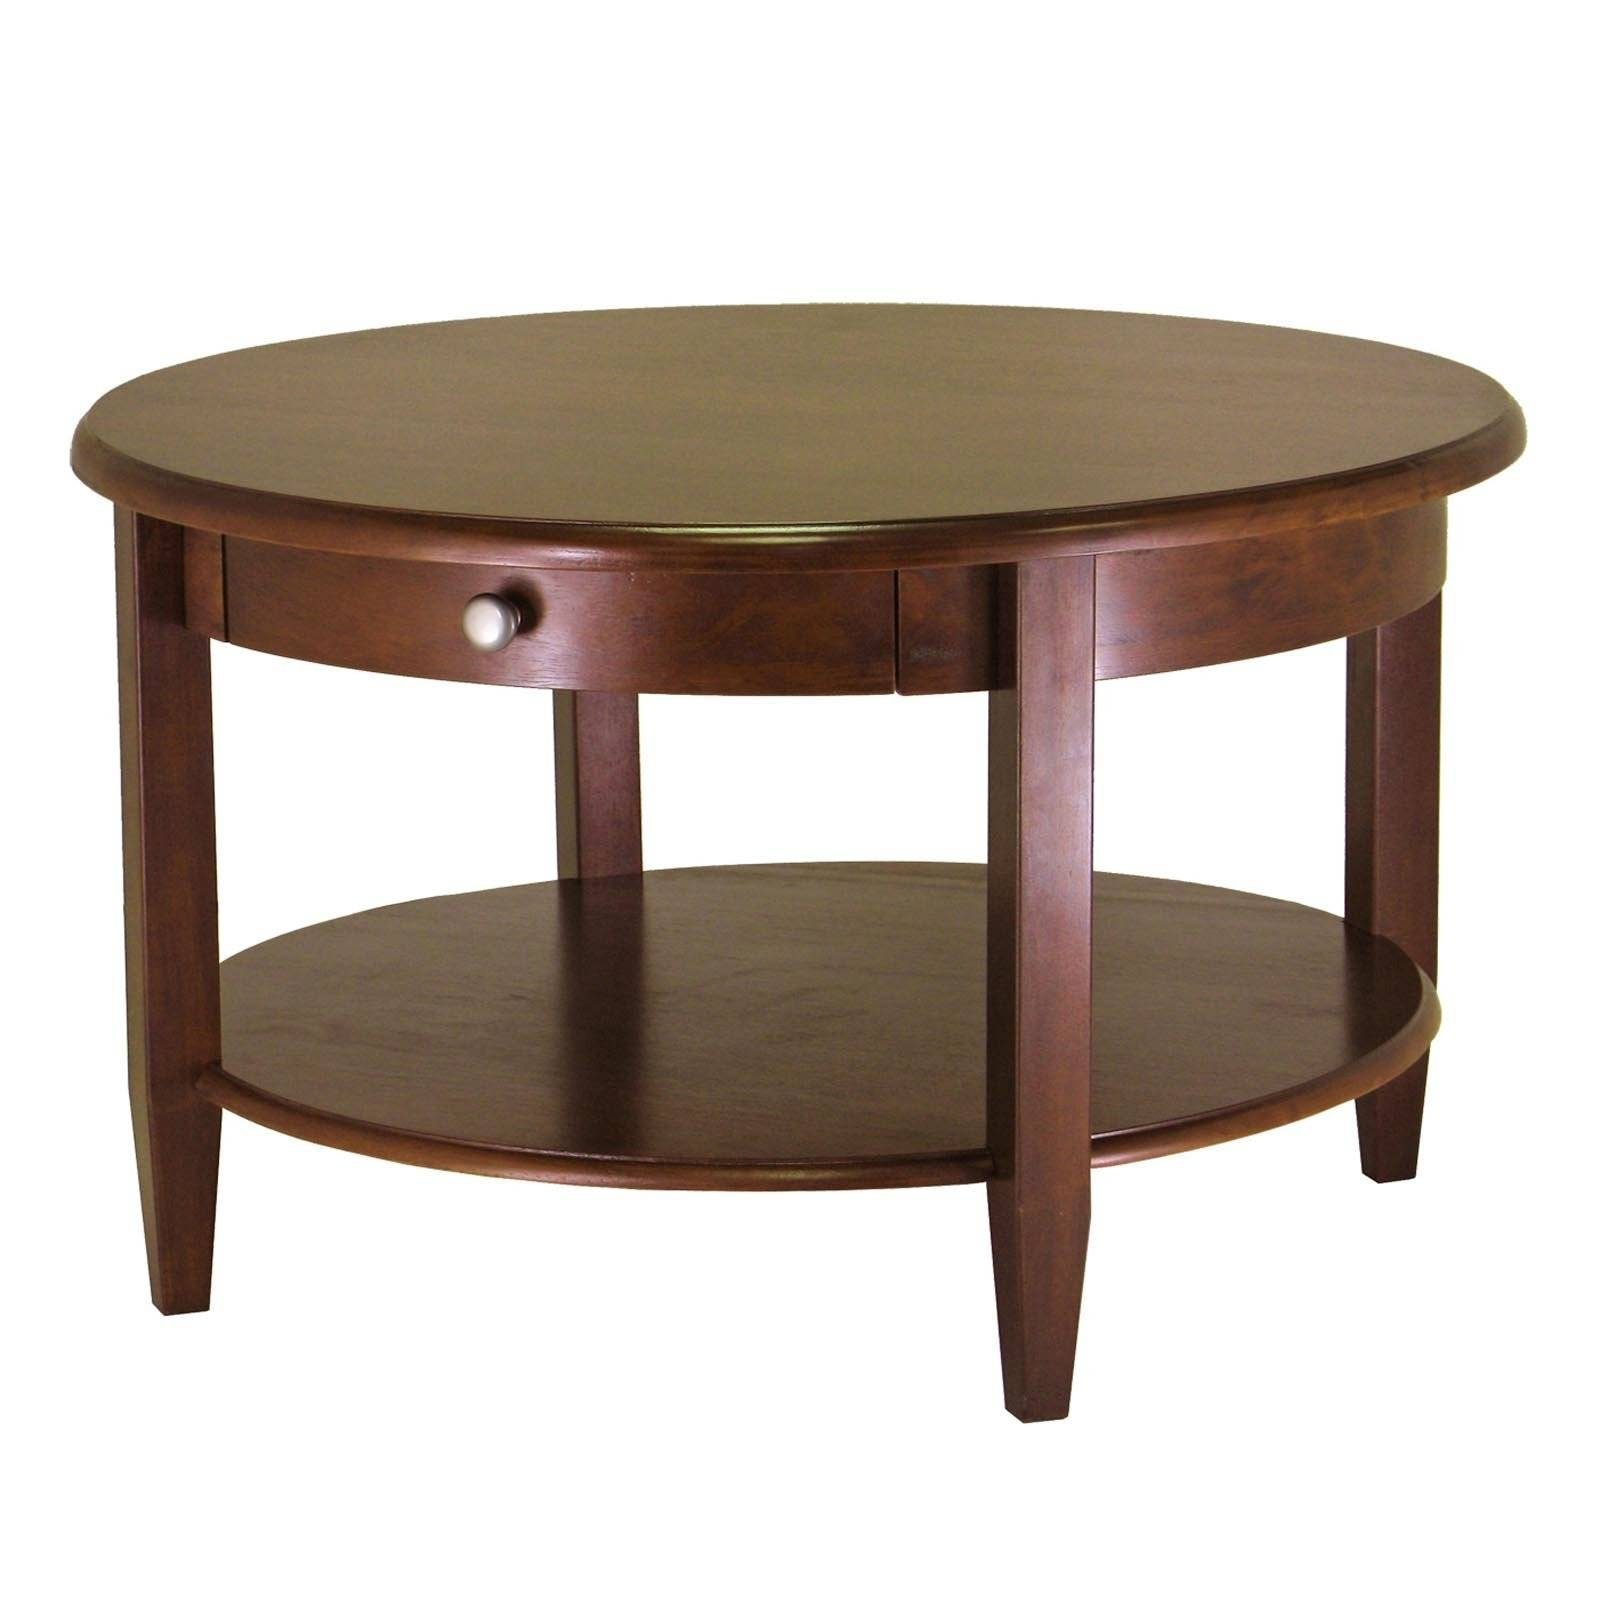 Round Coffee Table Contemporary Wooden Coffee Tables Antique within Round Coffee Tables With Drawer (Image 23 of 30)